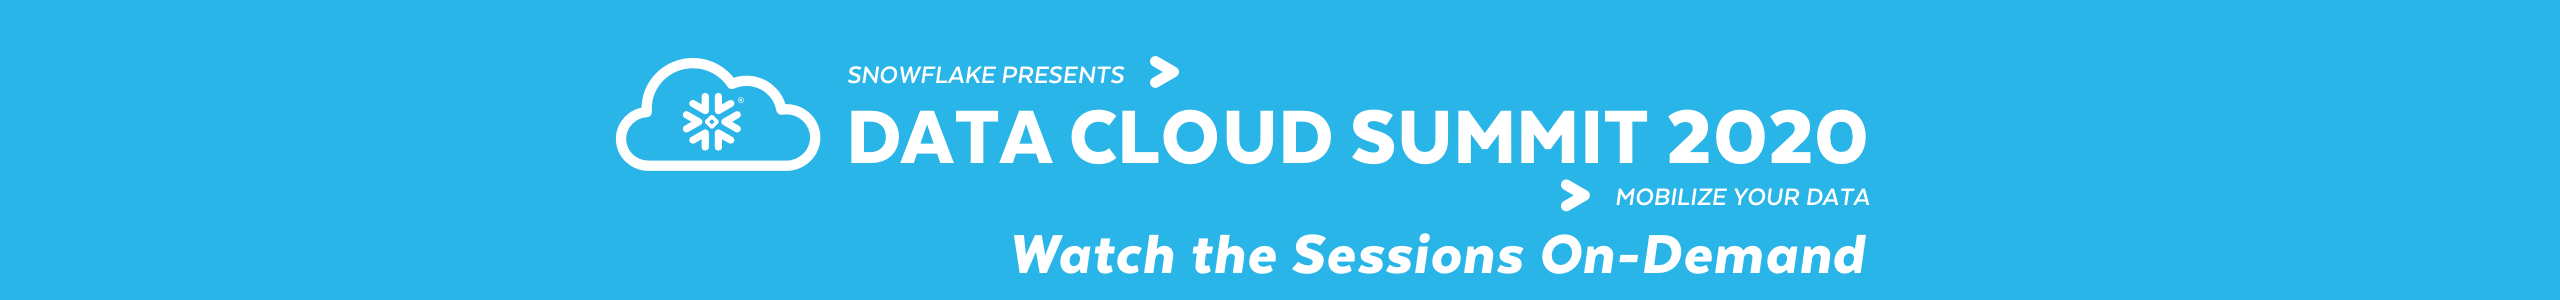 Data Cloud Summit logo